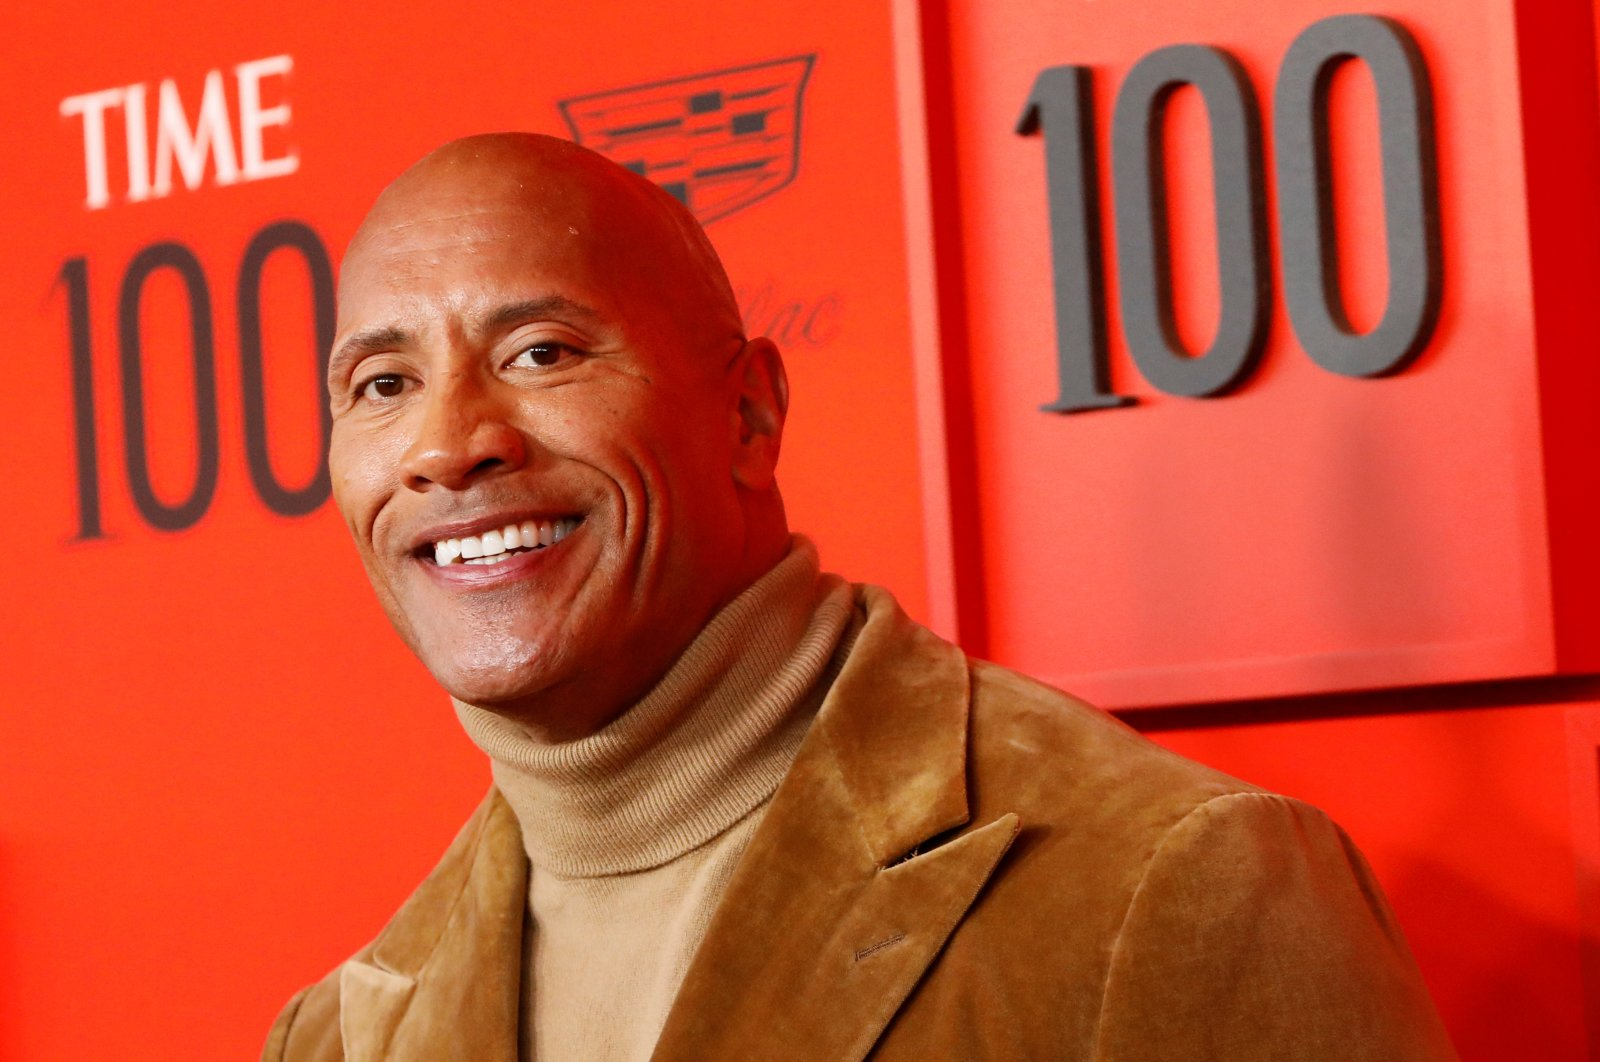 """Dwayne """"The Rock"""" Johnson poses upon arriving for the Time 100 Gala celebrating Time magazine's 100 most influential people in the world in New York City, New York, U.S., April 23, 2019. (Reuters Photo)"""